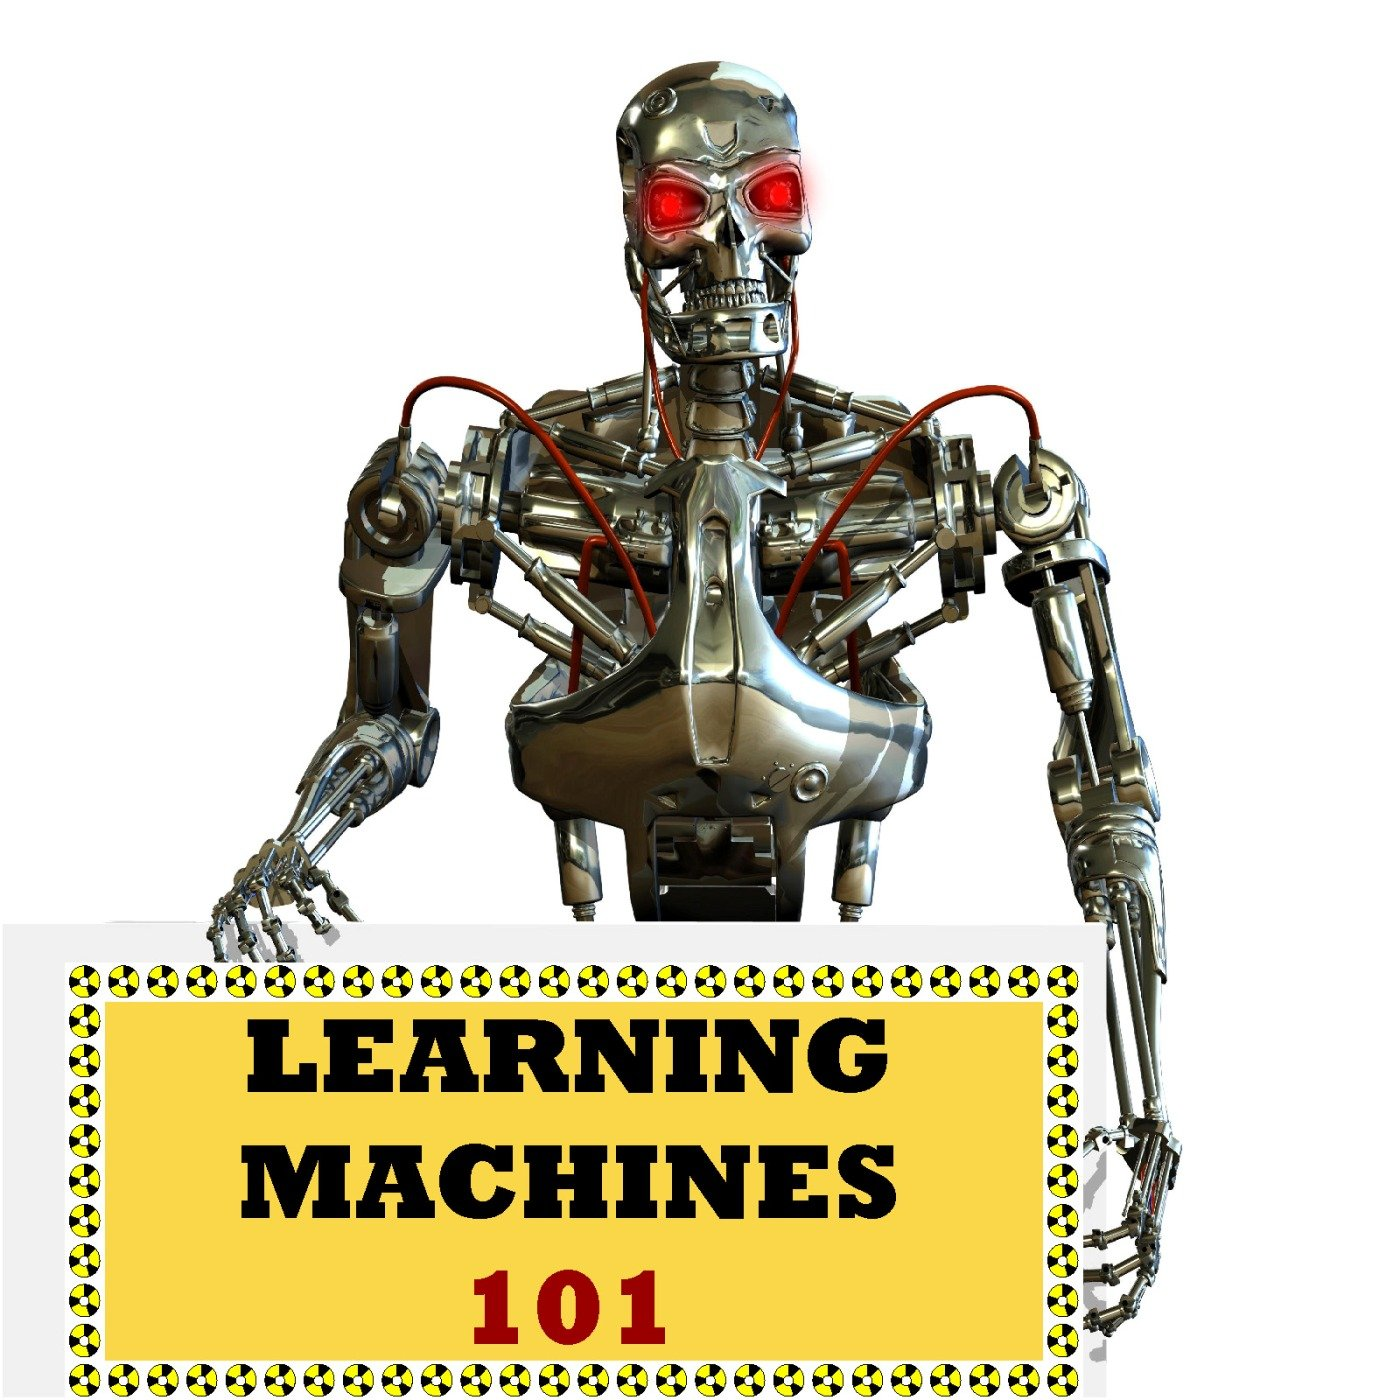 Learning Machines 101 Podcast Logo